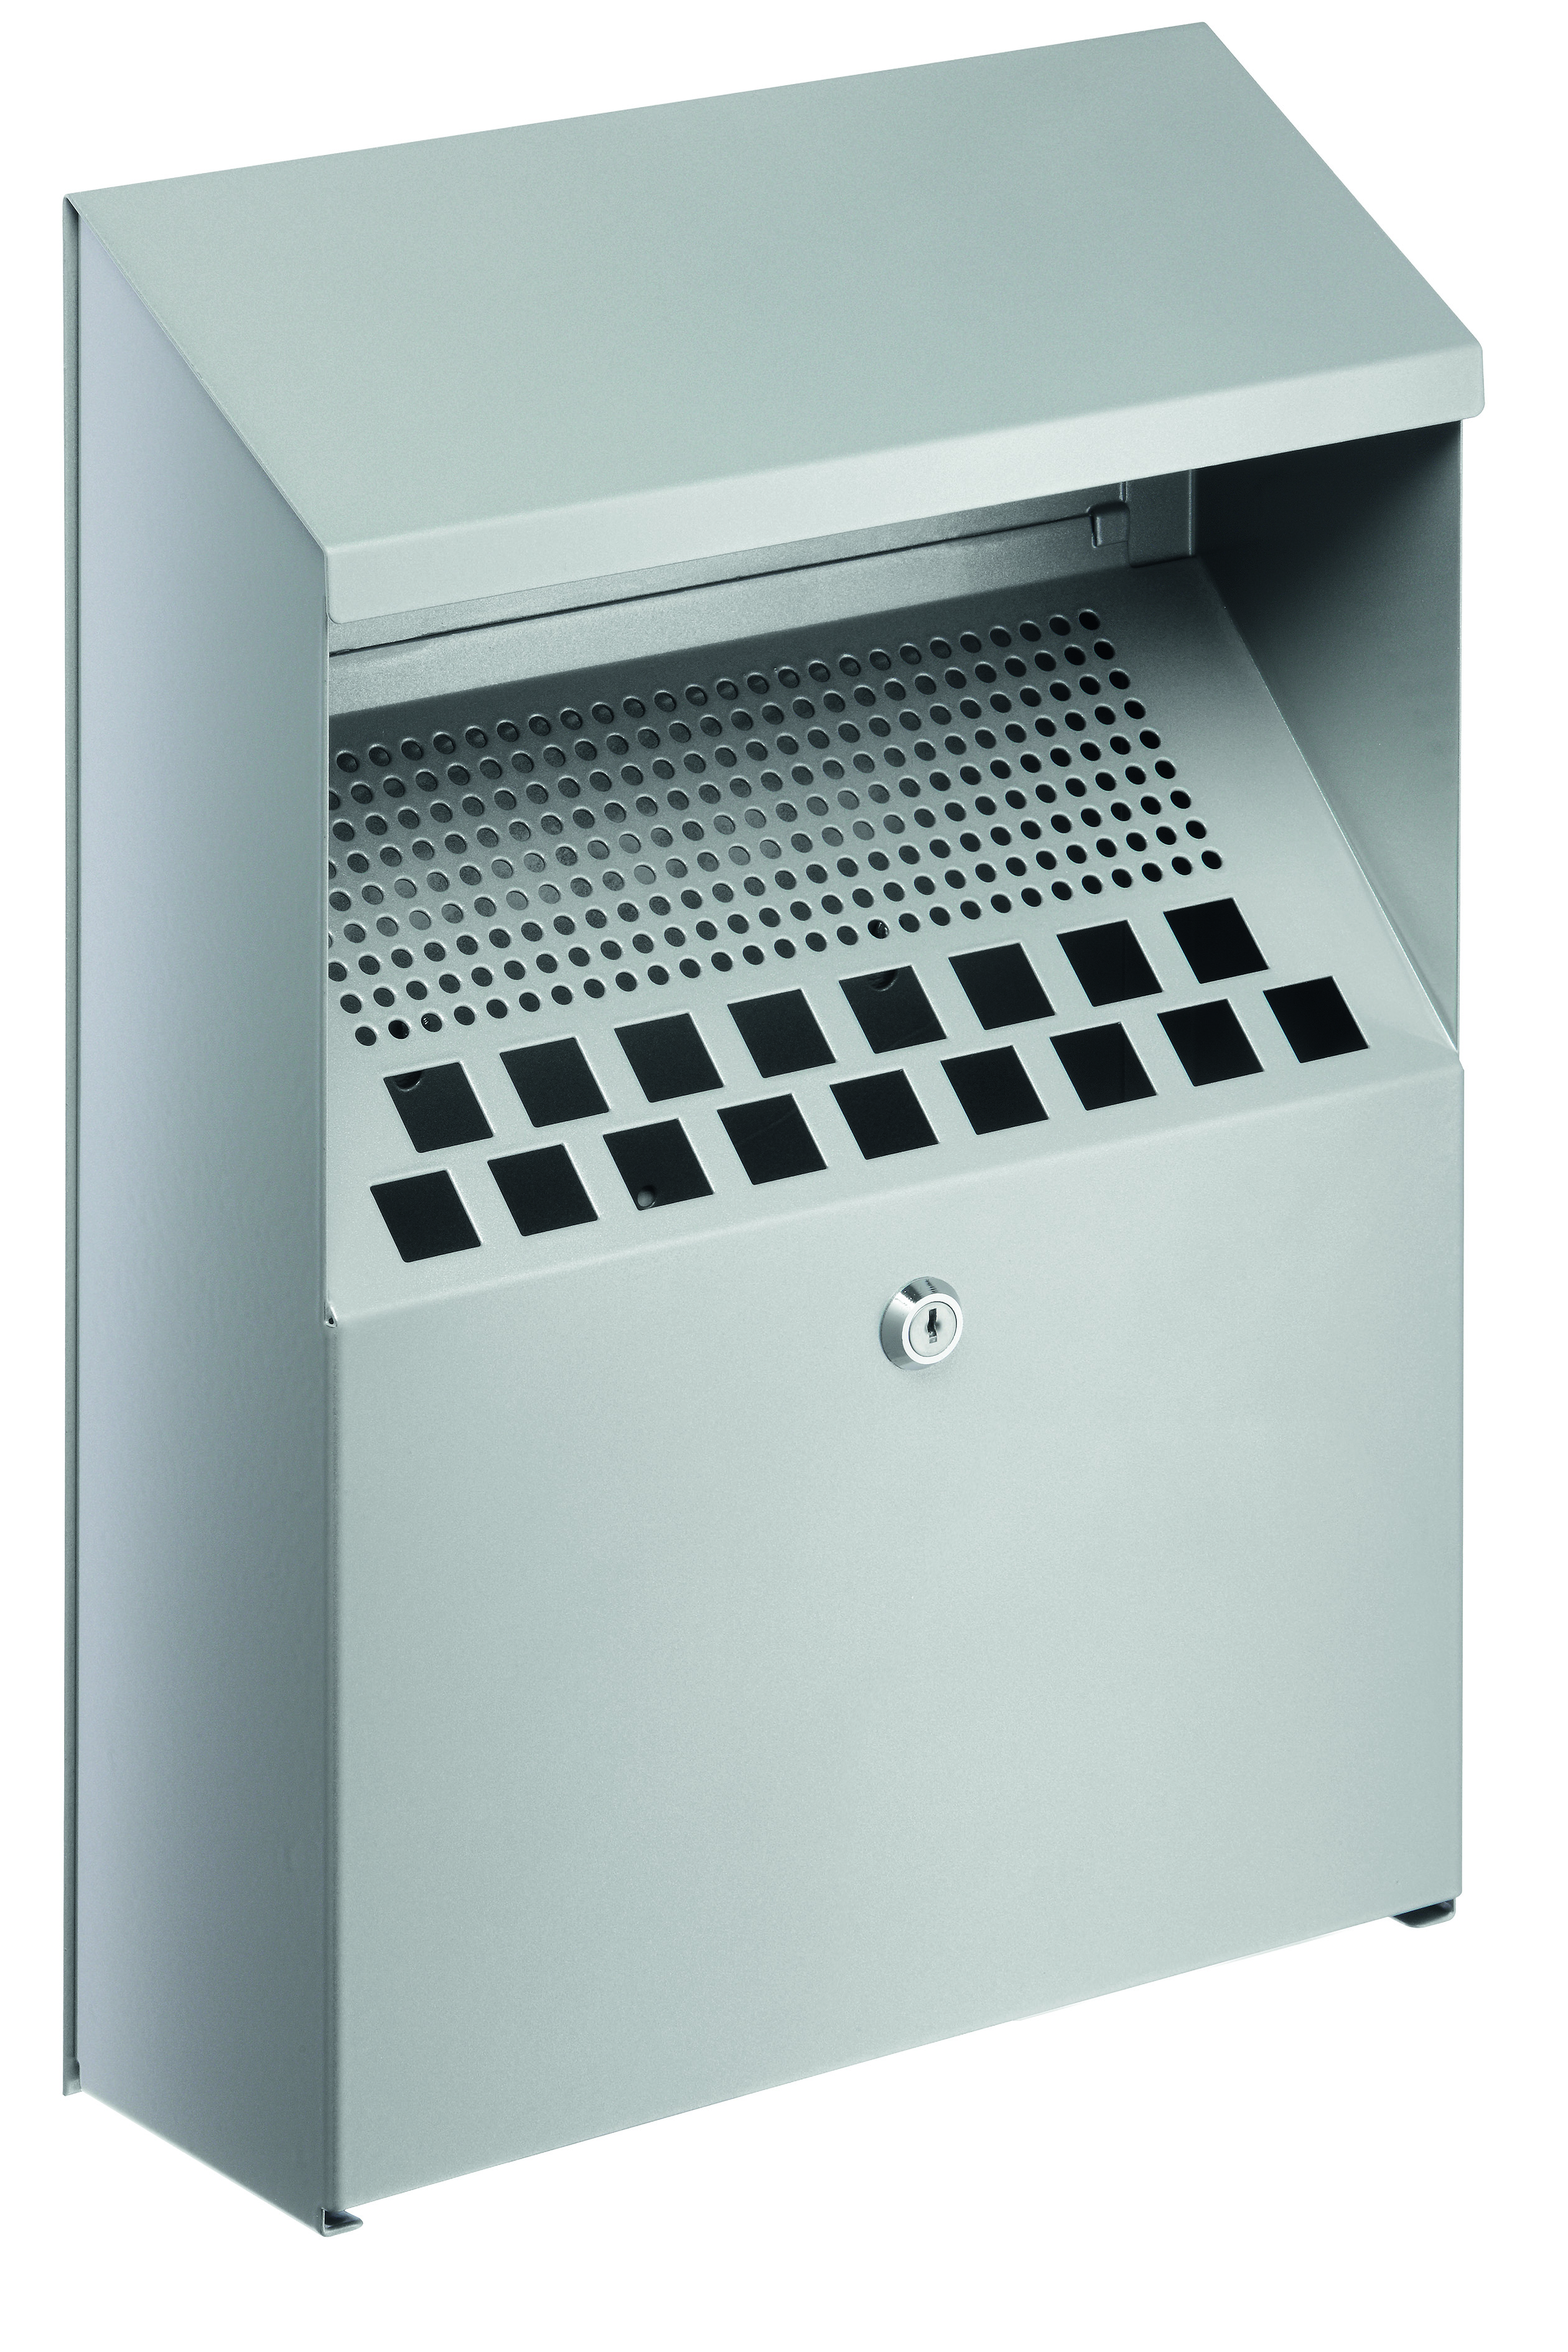 Durable Ash Bin Wall Mounted Capacity Of 4 Litres 310x107x450mm Silver Ref 3334 23